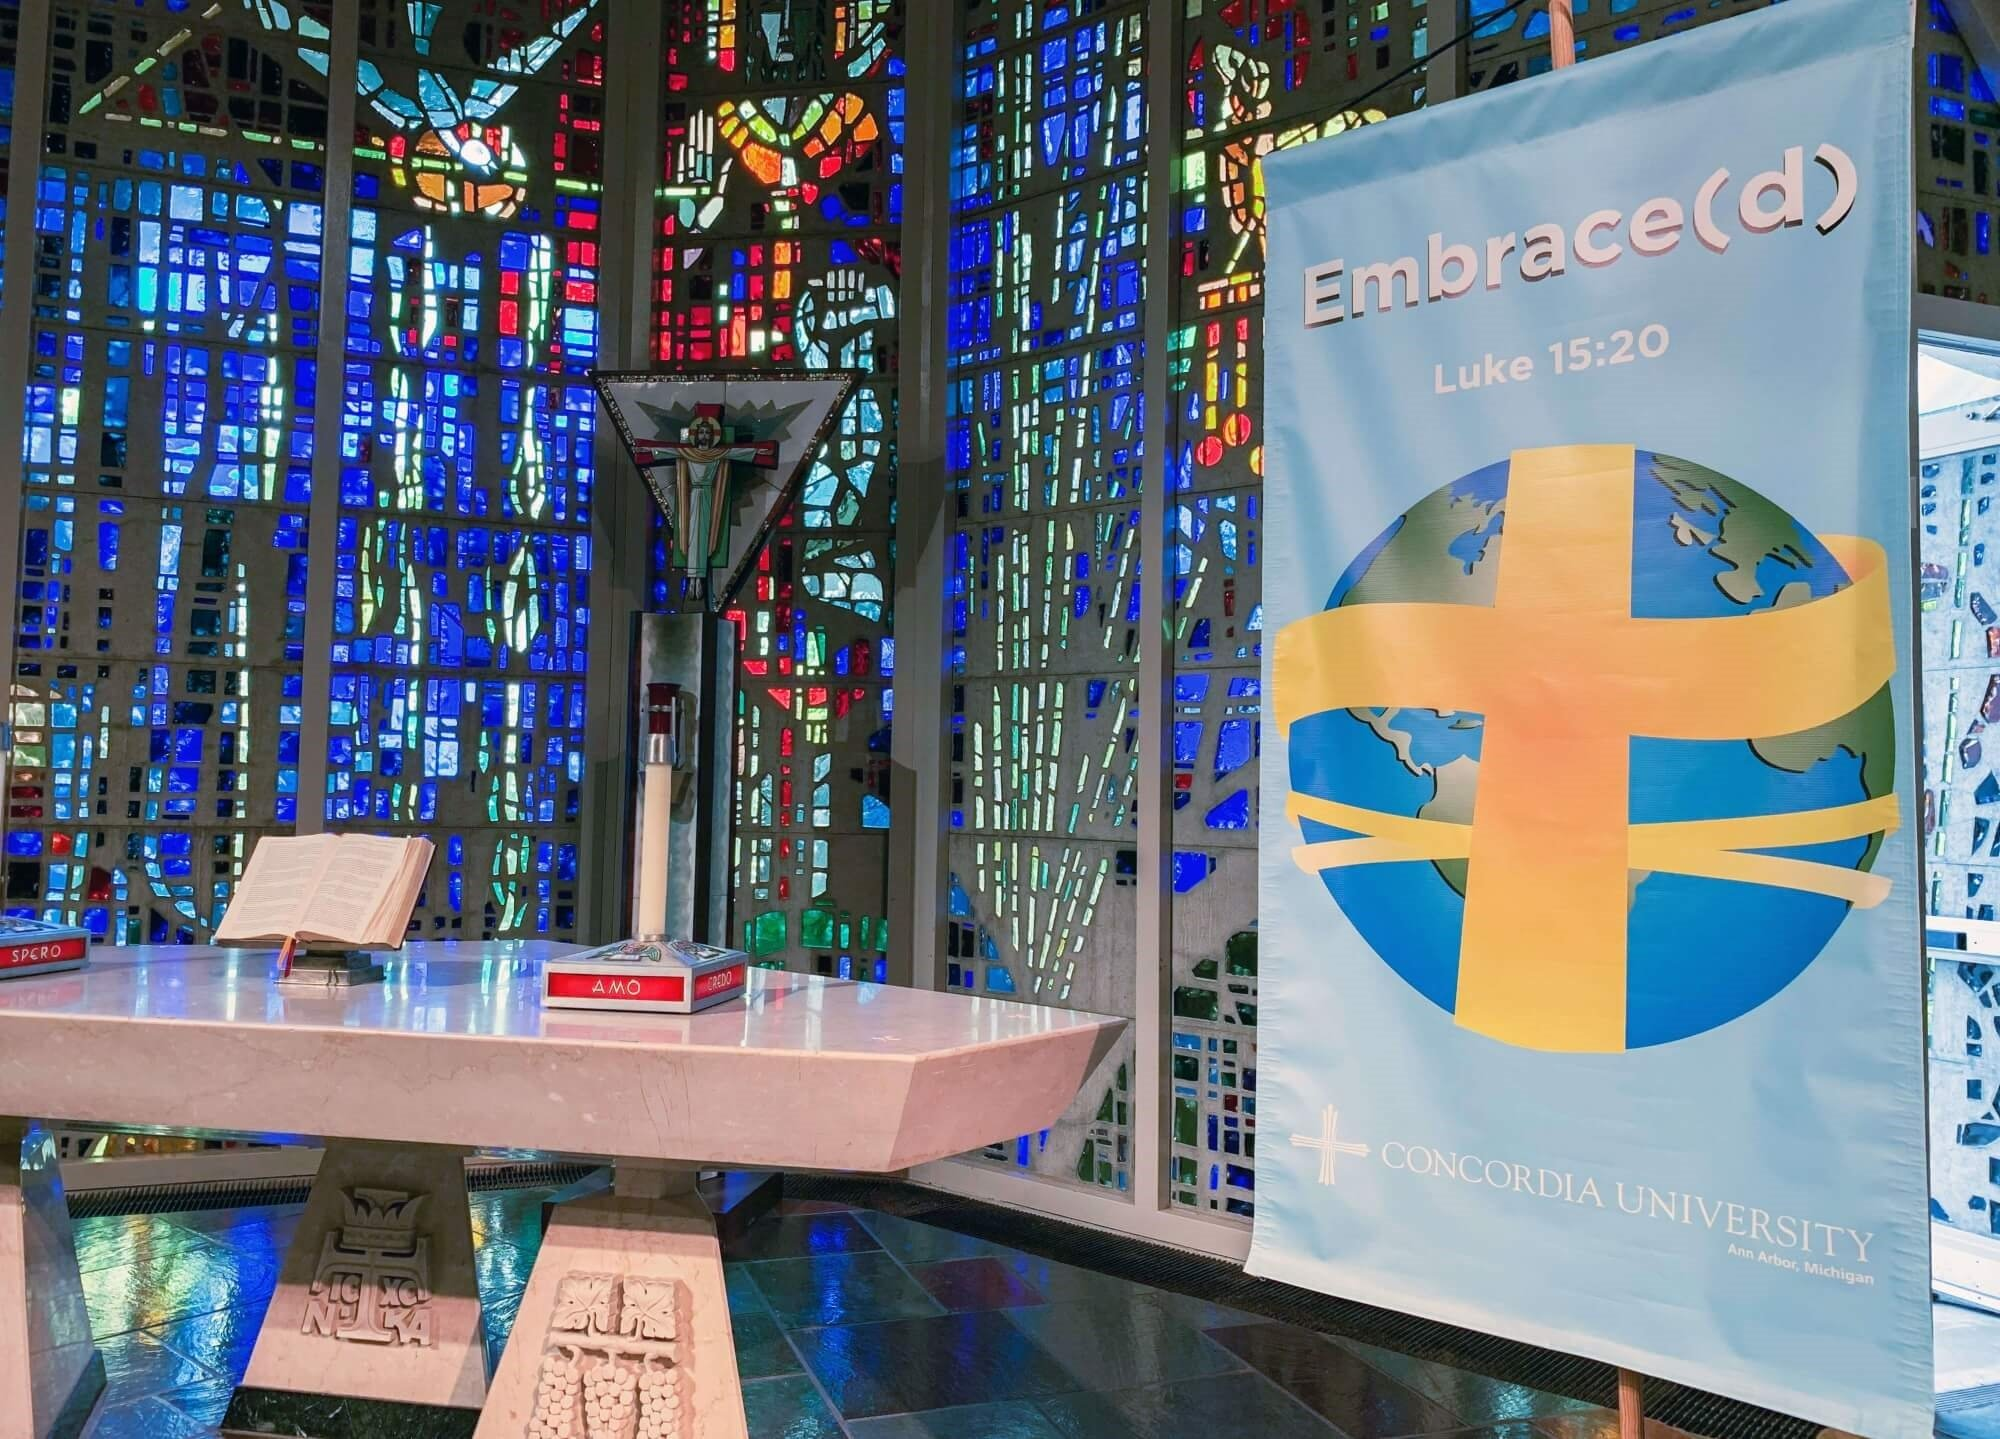 Embrace(d) banner in Chapel of the Holy Trinity